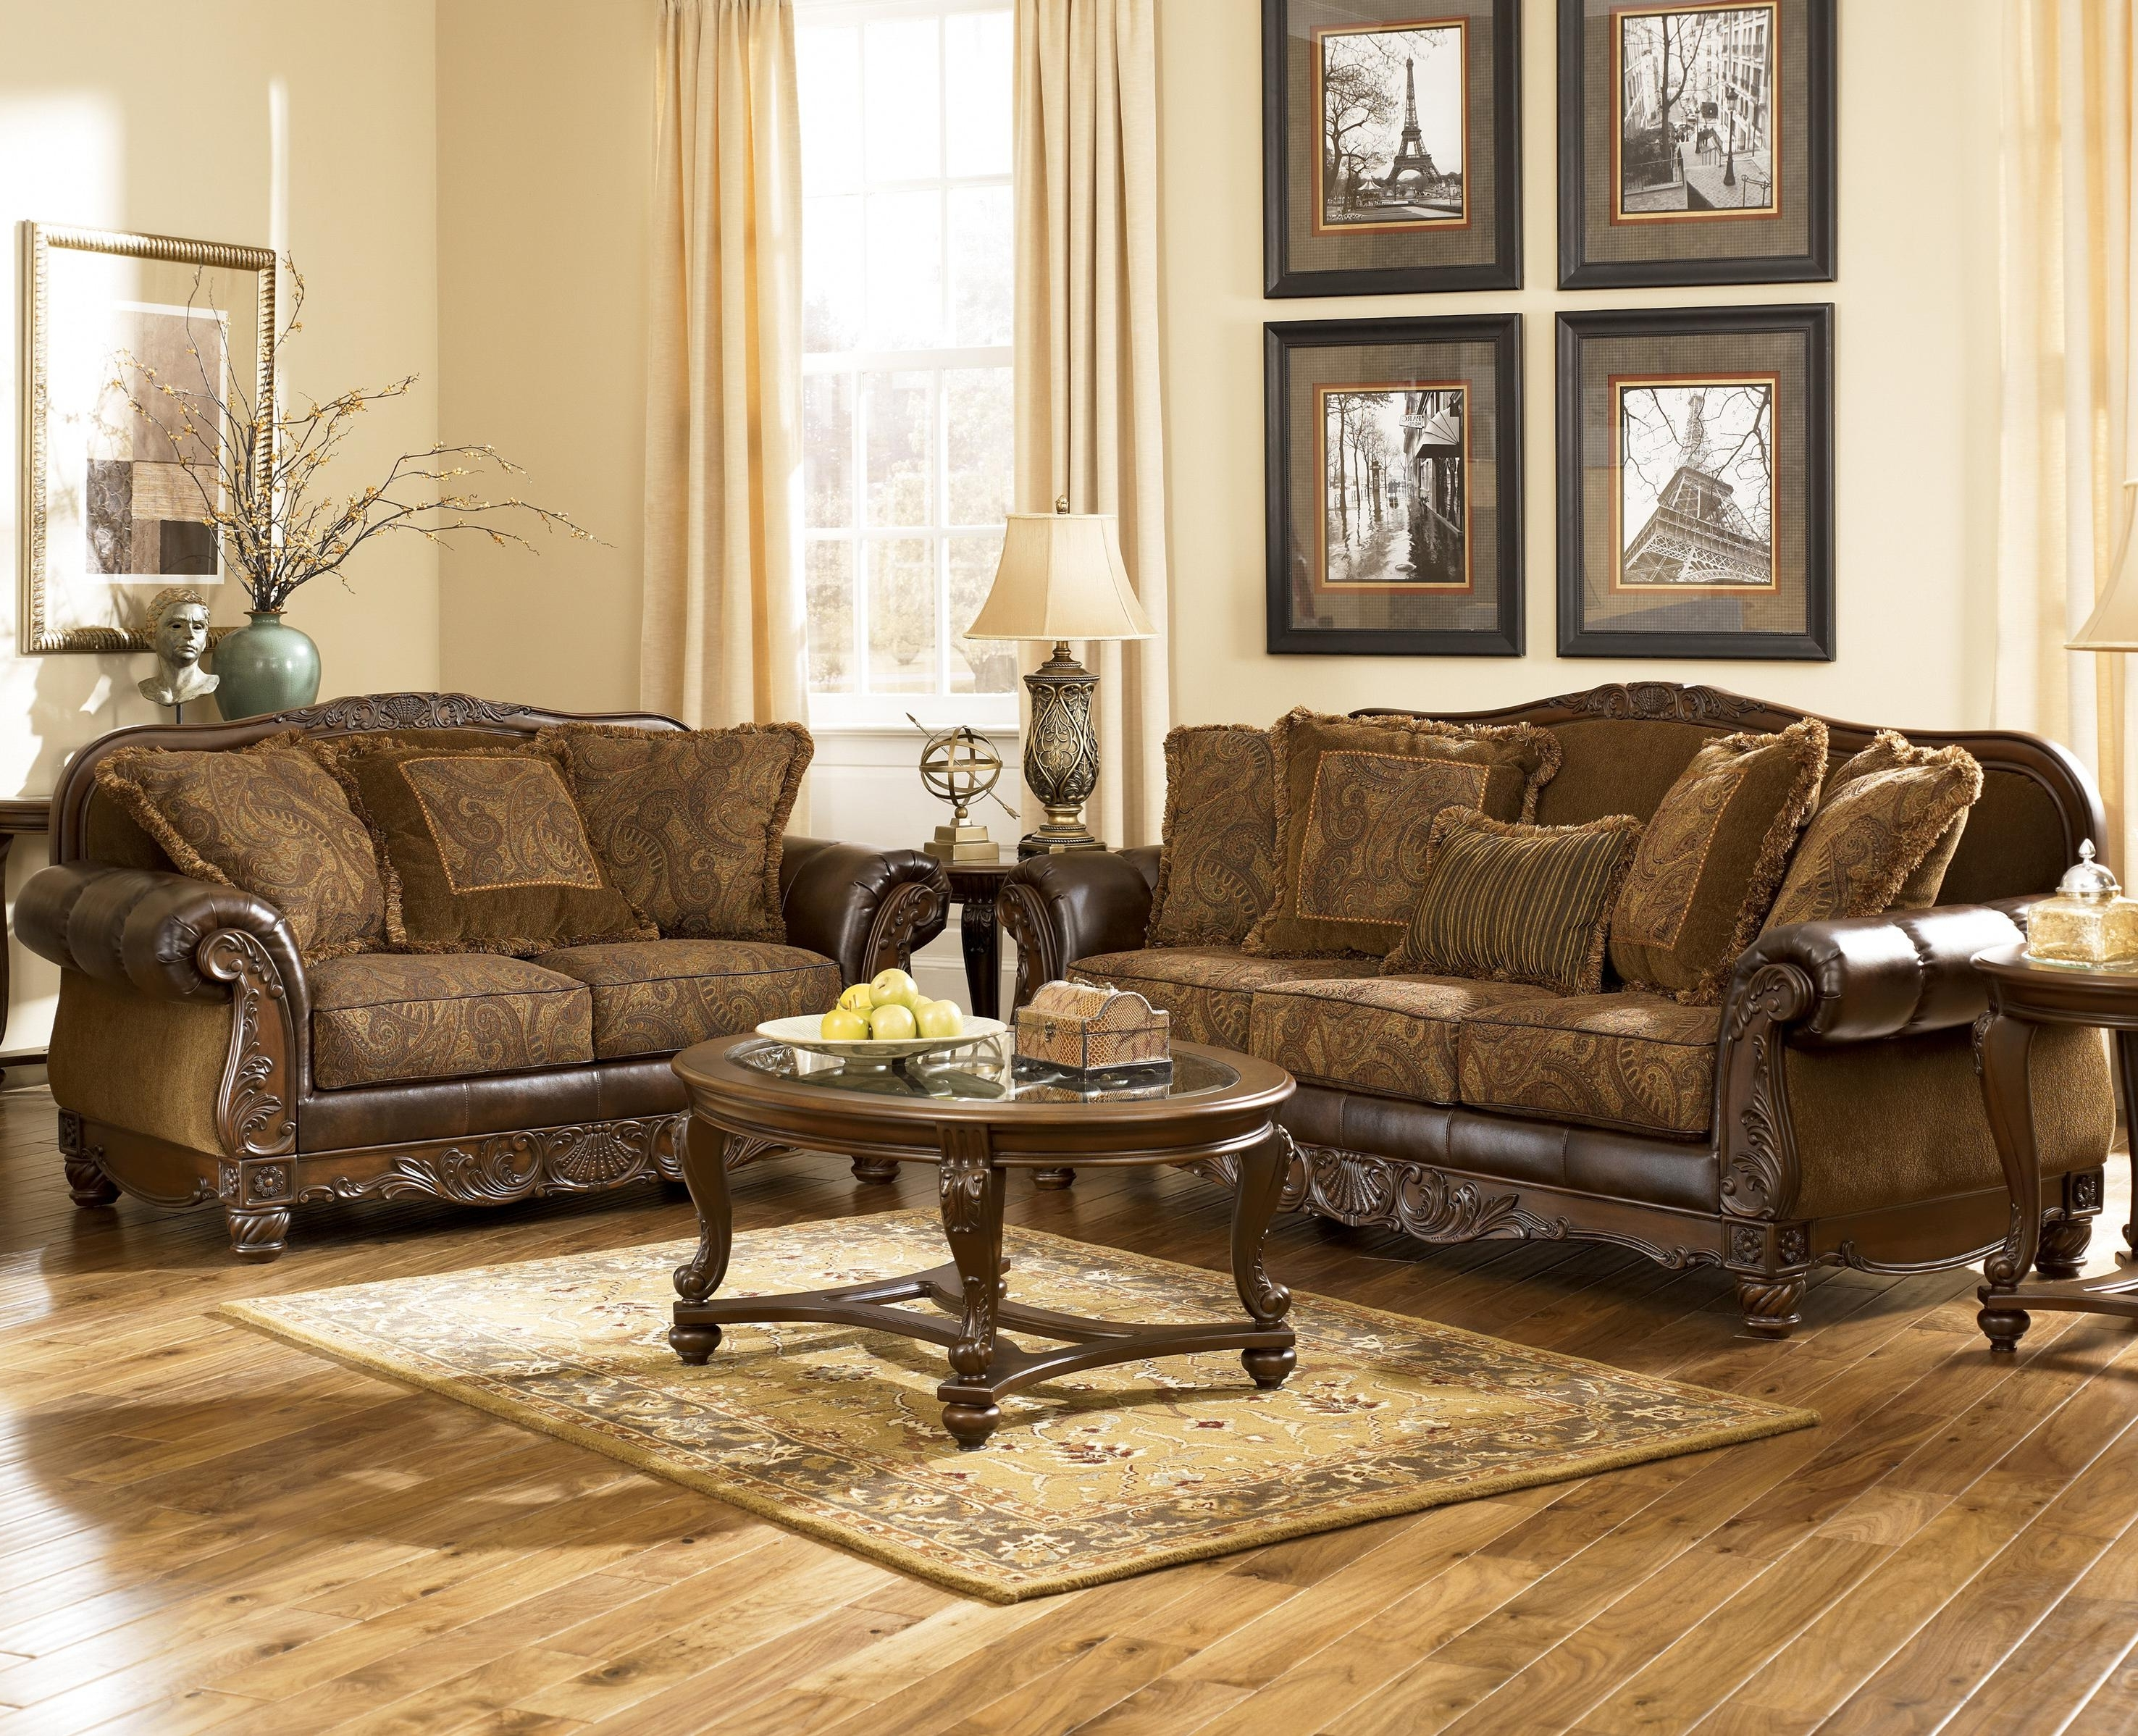 A 9 Furniture Throughout Most Recent Tallahassee Sectional Sofas (Gallery 20 of 20)